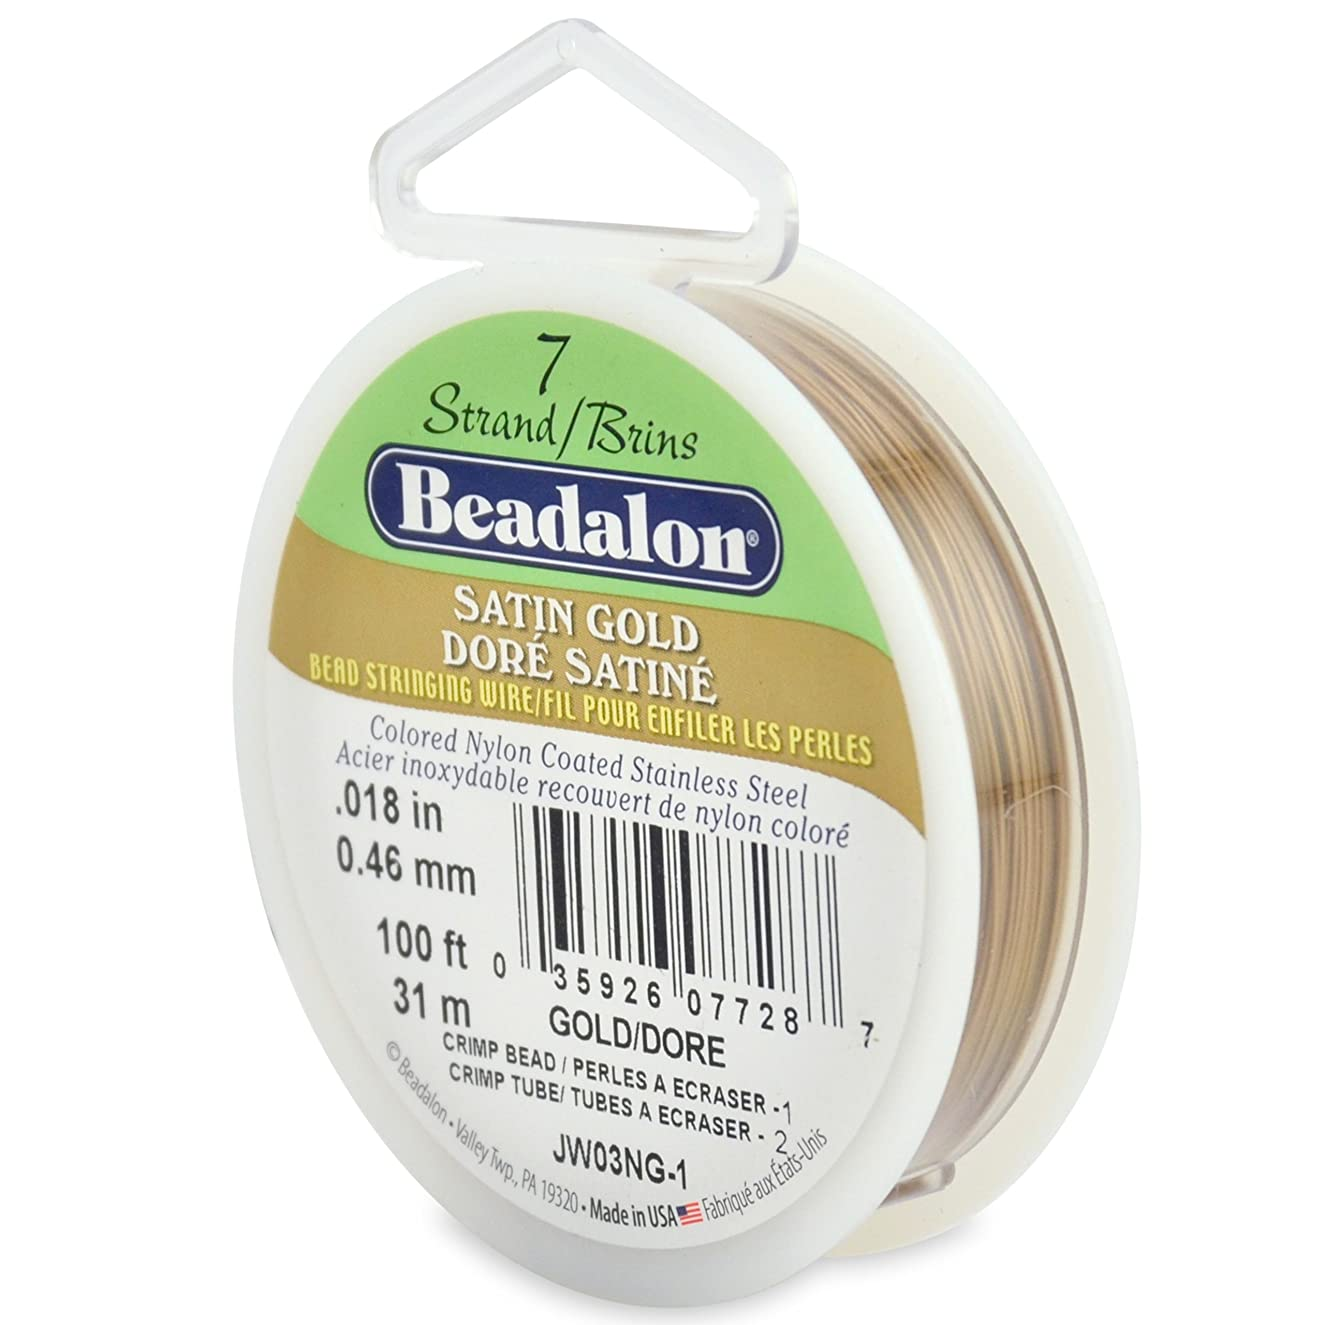 Beadalon 7-Strand Bead Stringing Wire, 0.018-Inch, Satin Gold, 100-Feet